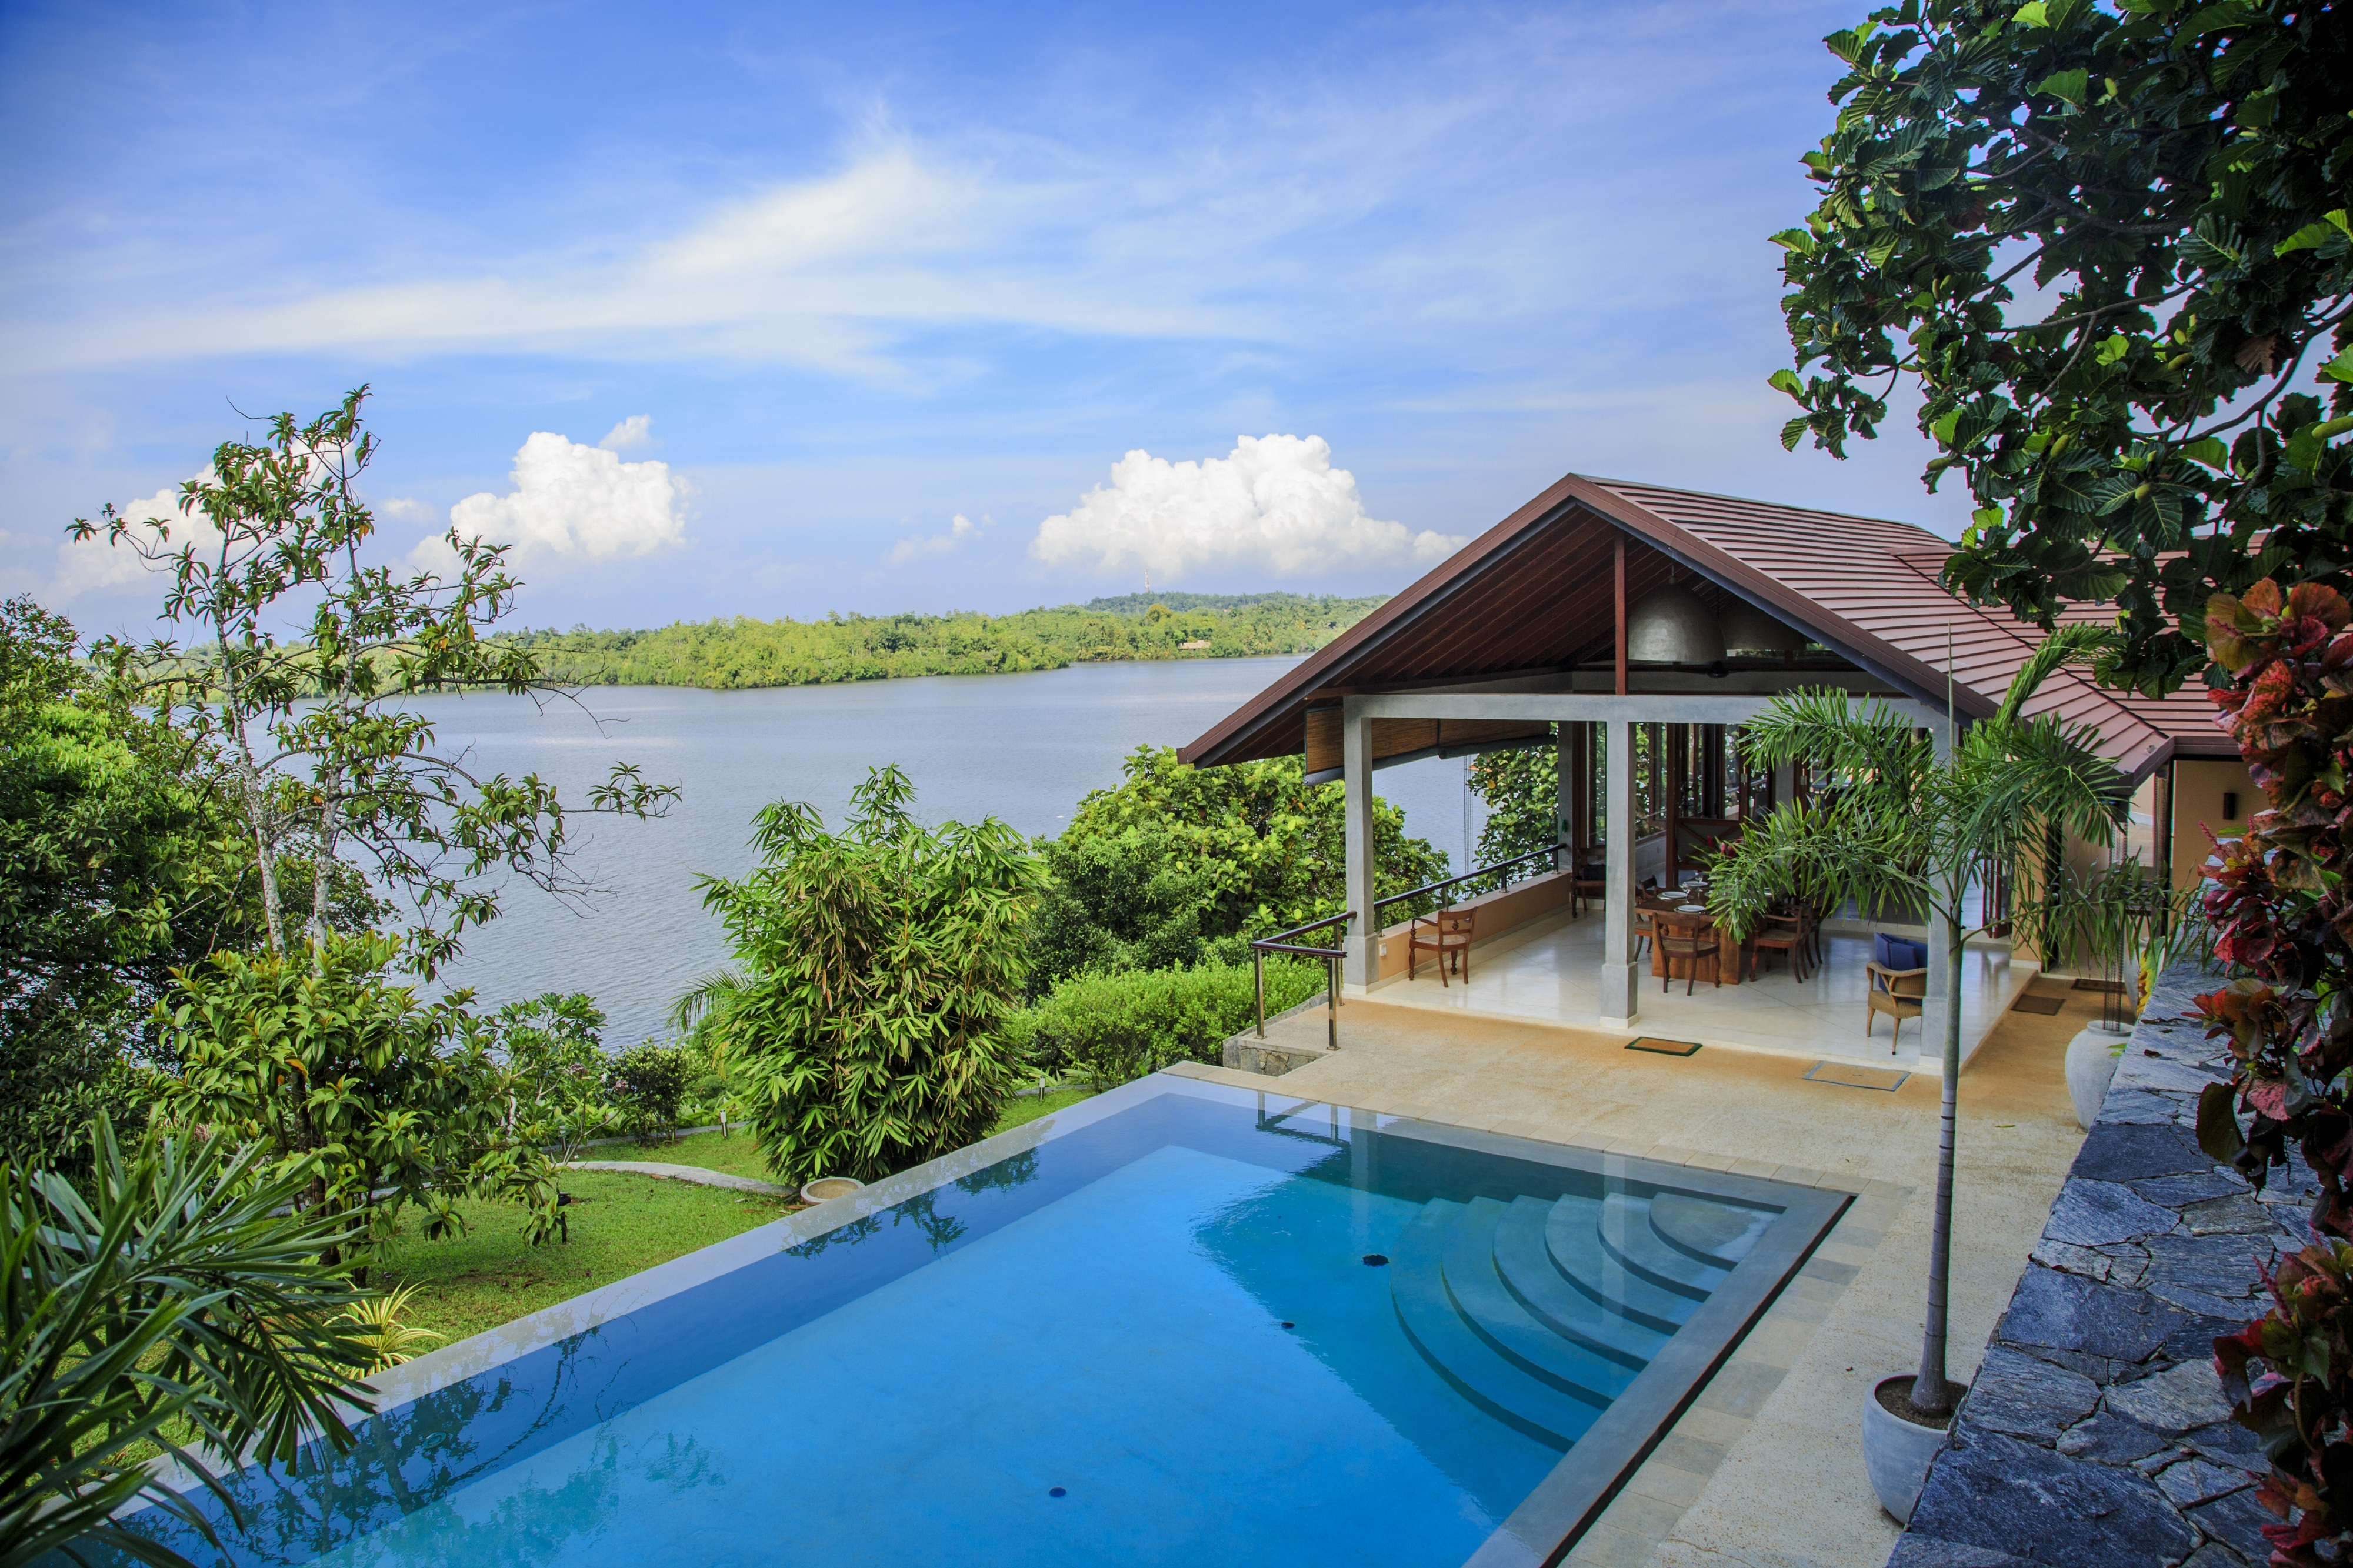 Enjoy the views from your private infinity pool in Sri Lanka